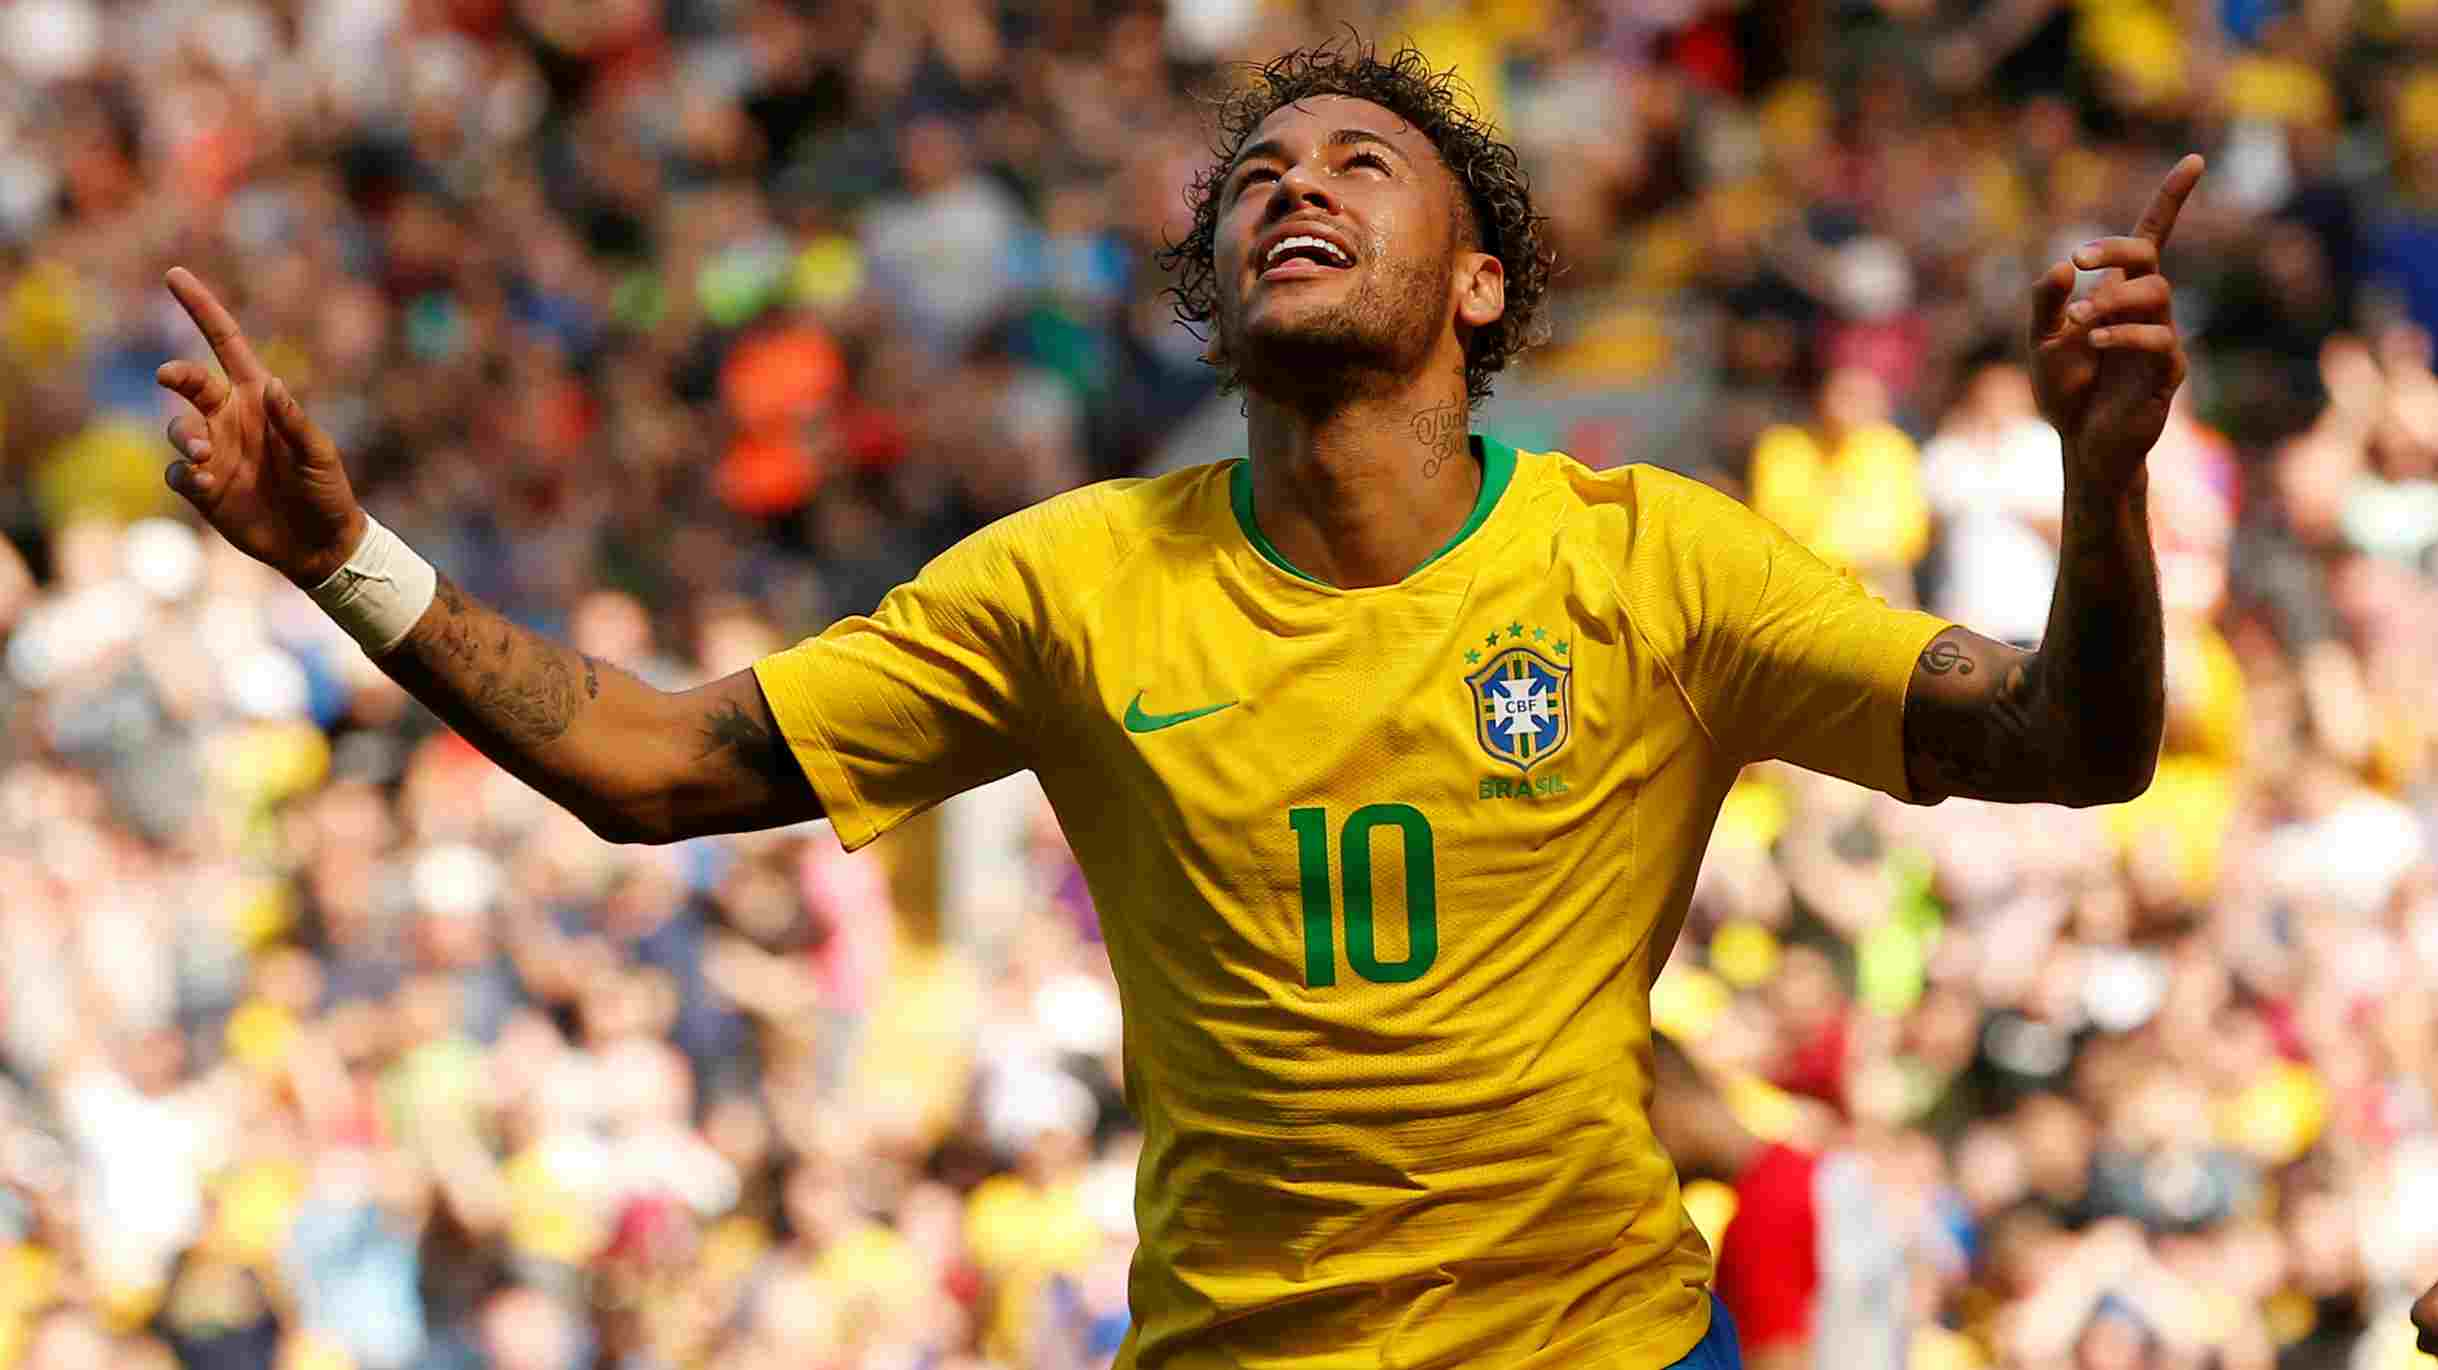 Neymar | Football | $90 million | The Brazilian wonder is fifth in the list of top paid athletes 2018 list by Forbes with $73 million in salary/bonuses and $17 million in endorsements. The Paris Saint-Germain forward was signed by the French club in a $600 million deal. Neymar is supposed to receive a total of $350 million from the deal till June 2022.